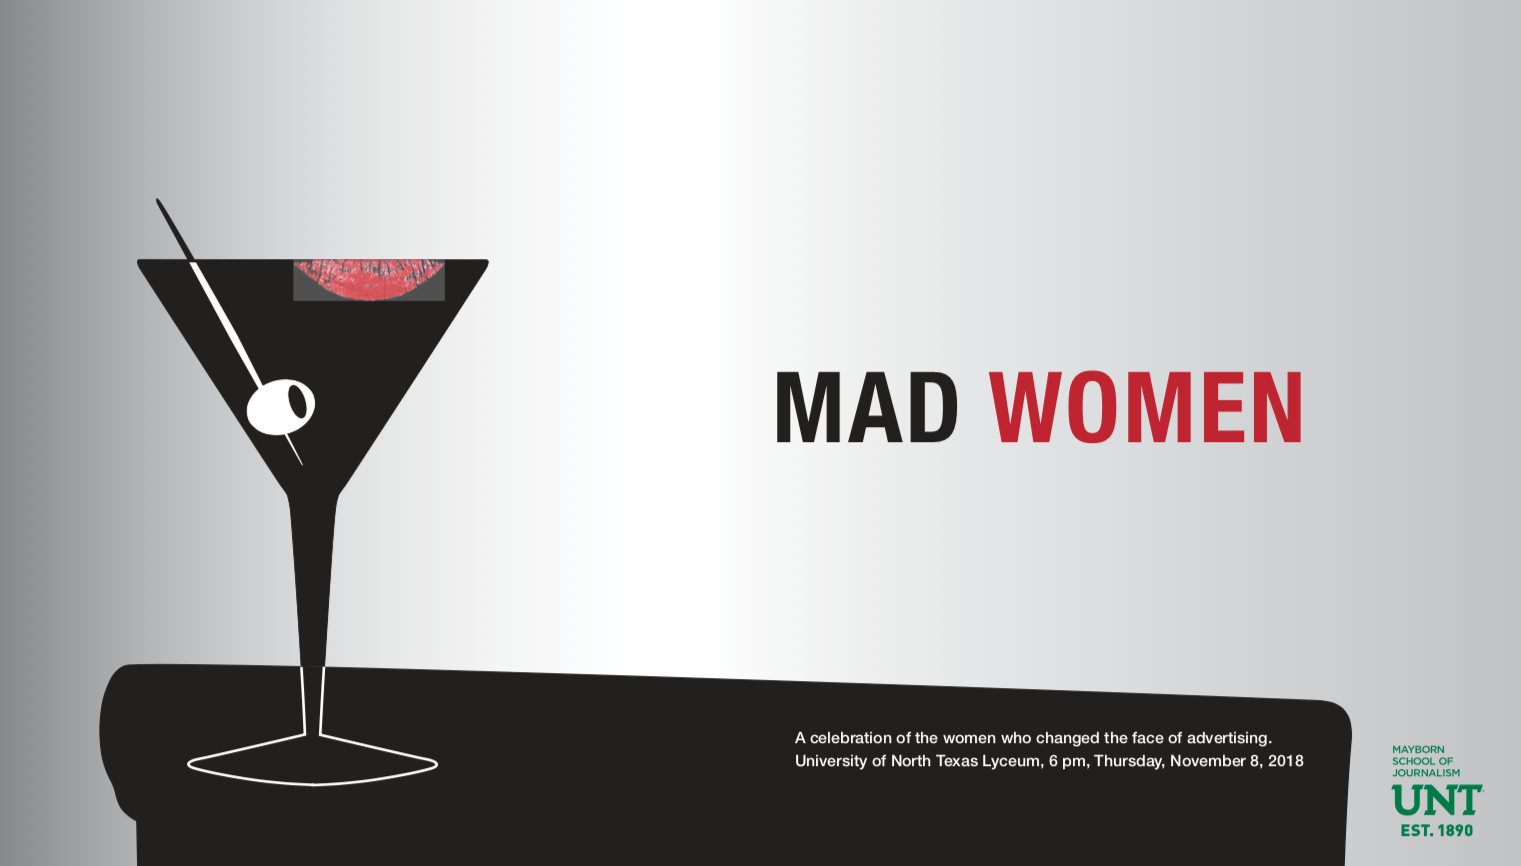 It's not just Peggy Olsen anymore. Modern Mad Women head to UNT Nov. 8.